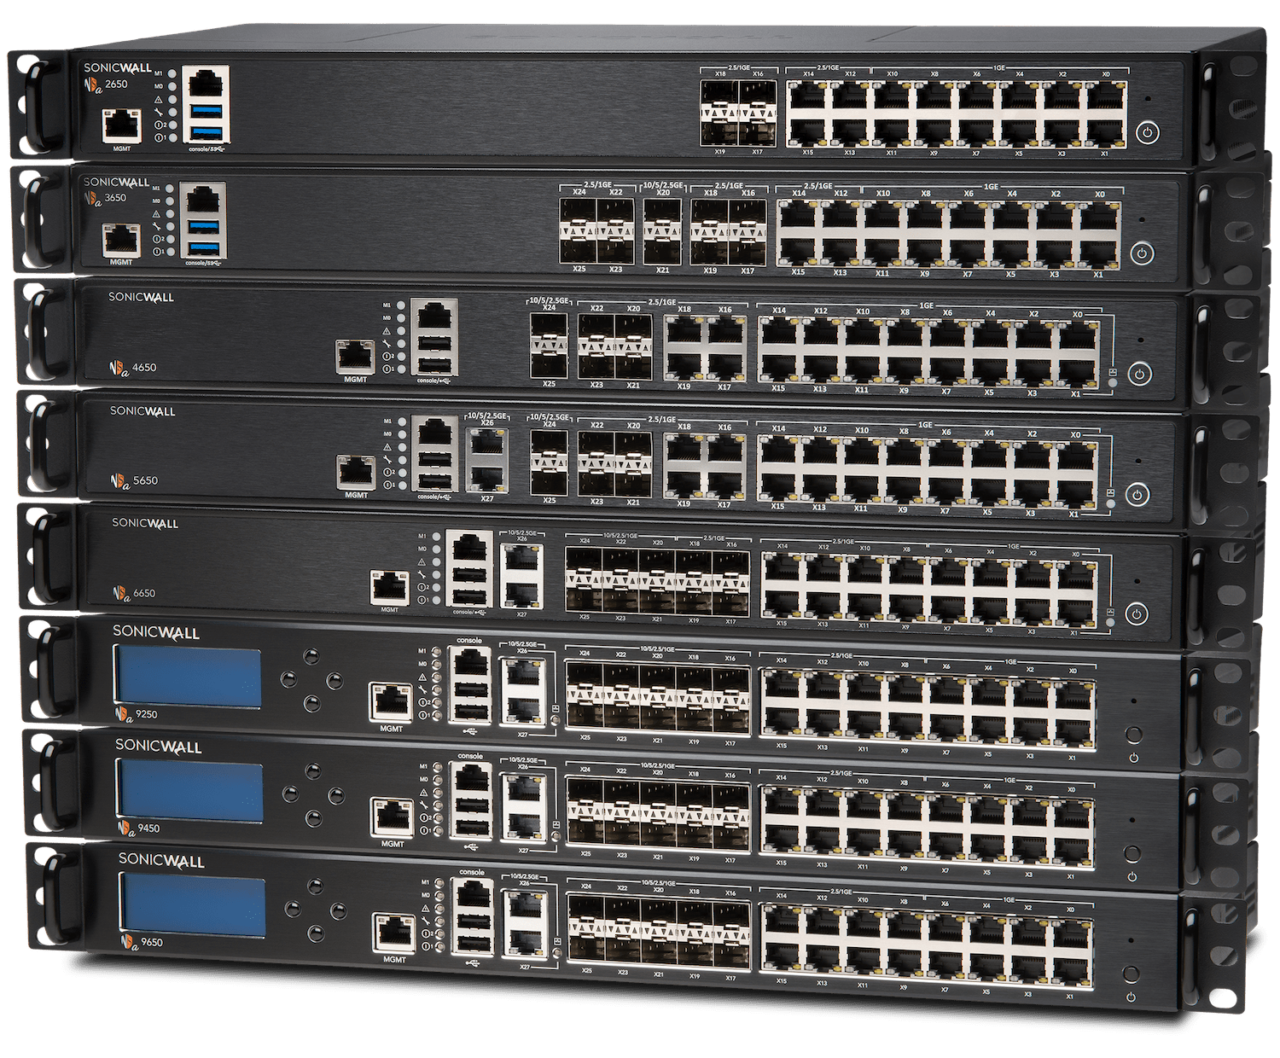 SonicWall firewalls give you comprehensive threat prevention at